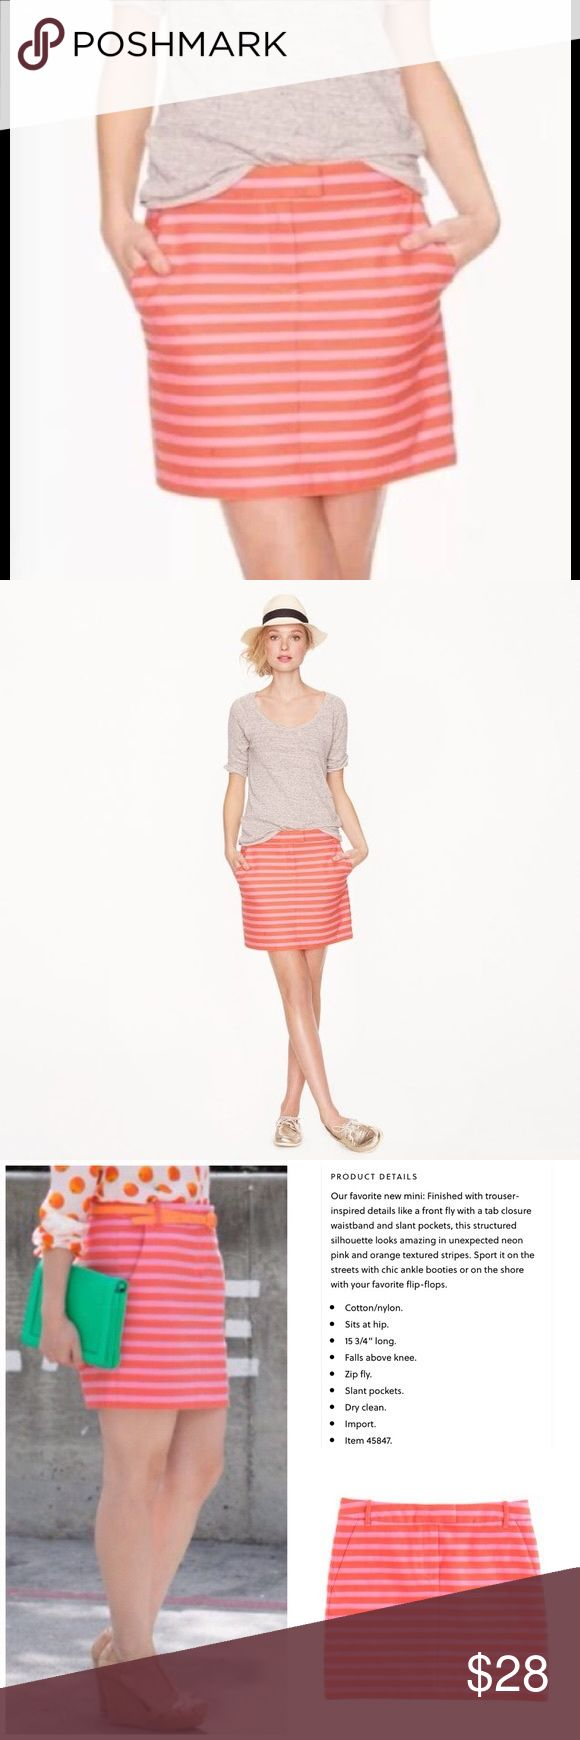 """NWT J Crew Ladies Sz 4 Postcard Mini Skirt Striped Our favorite new mini: Finished with trouser-inspired details like a front fly with a tab closure waistband and slant pockets, this structured silhouette looks amazing in unexpected neon pink and orange textured stripes. Sport it on the streets with chic ankle booties or on the shore with your favorite flip-flops. Textured stripes.  Cotton/nylon. Sits at hip. 15 3/4"""" long. Waist is 31 in. Zip fly. Slant pockets. J. Crew Skirts"""